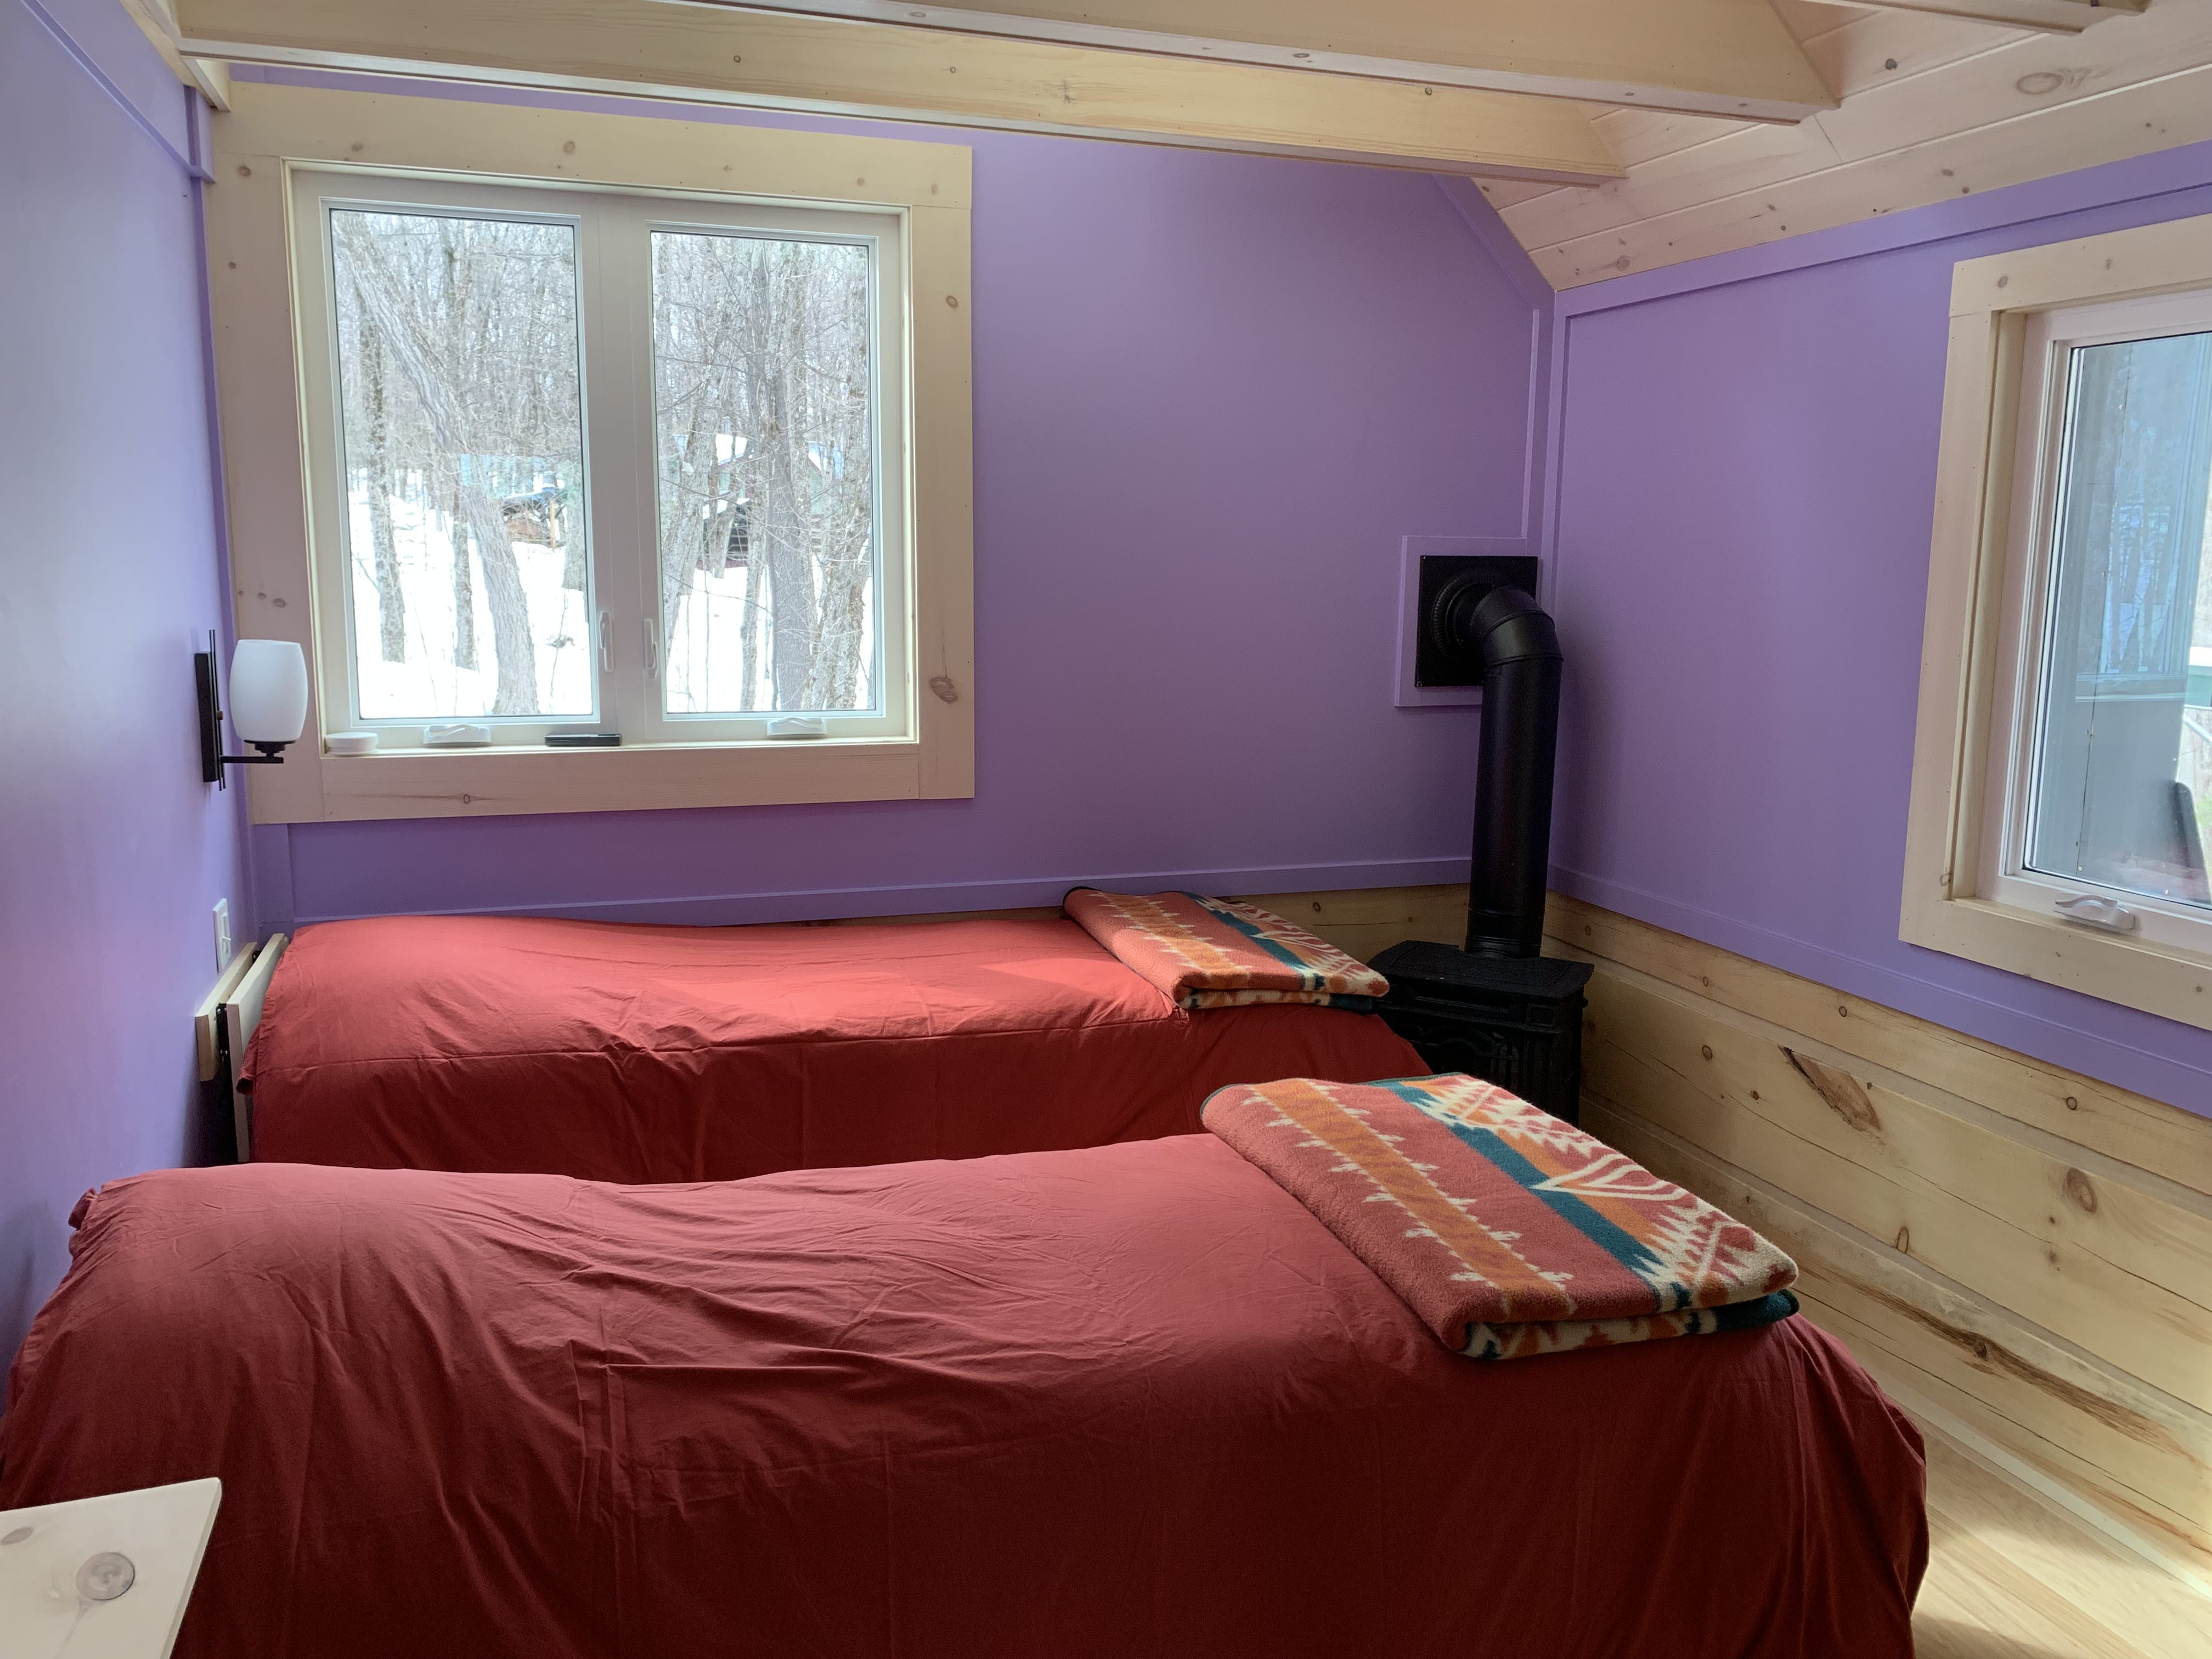 Bright rooms with a forest window view